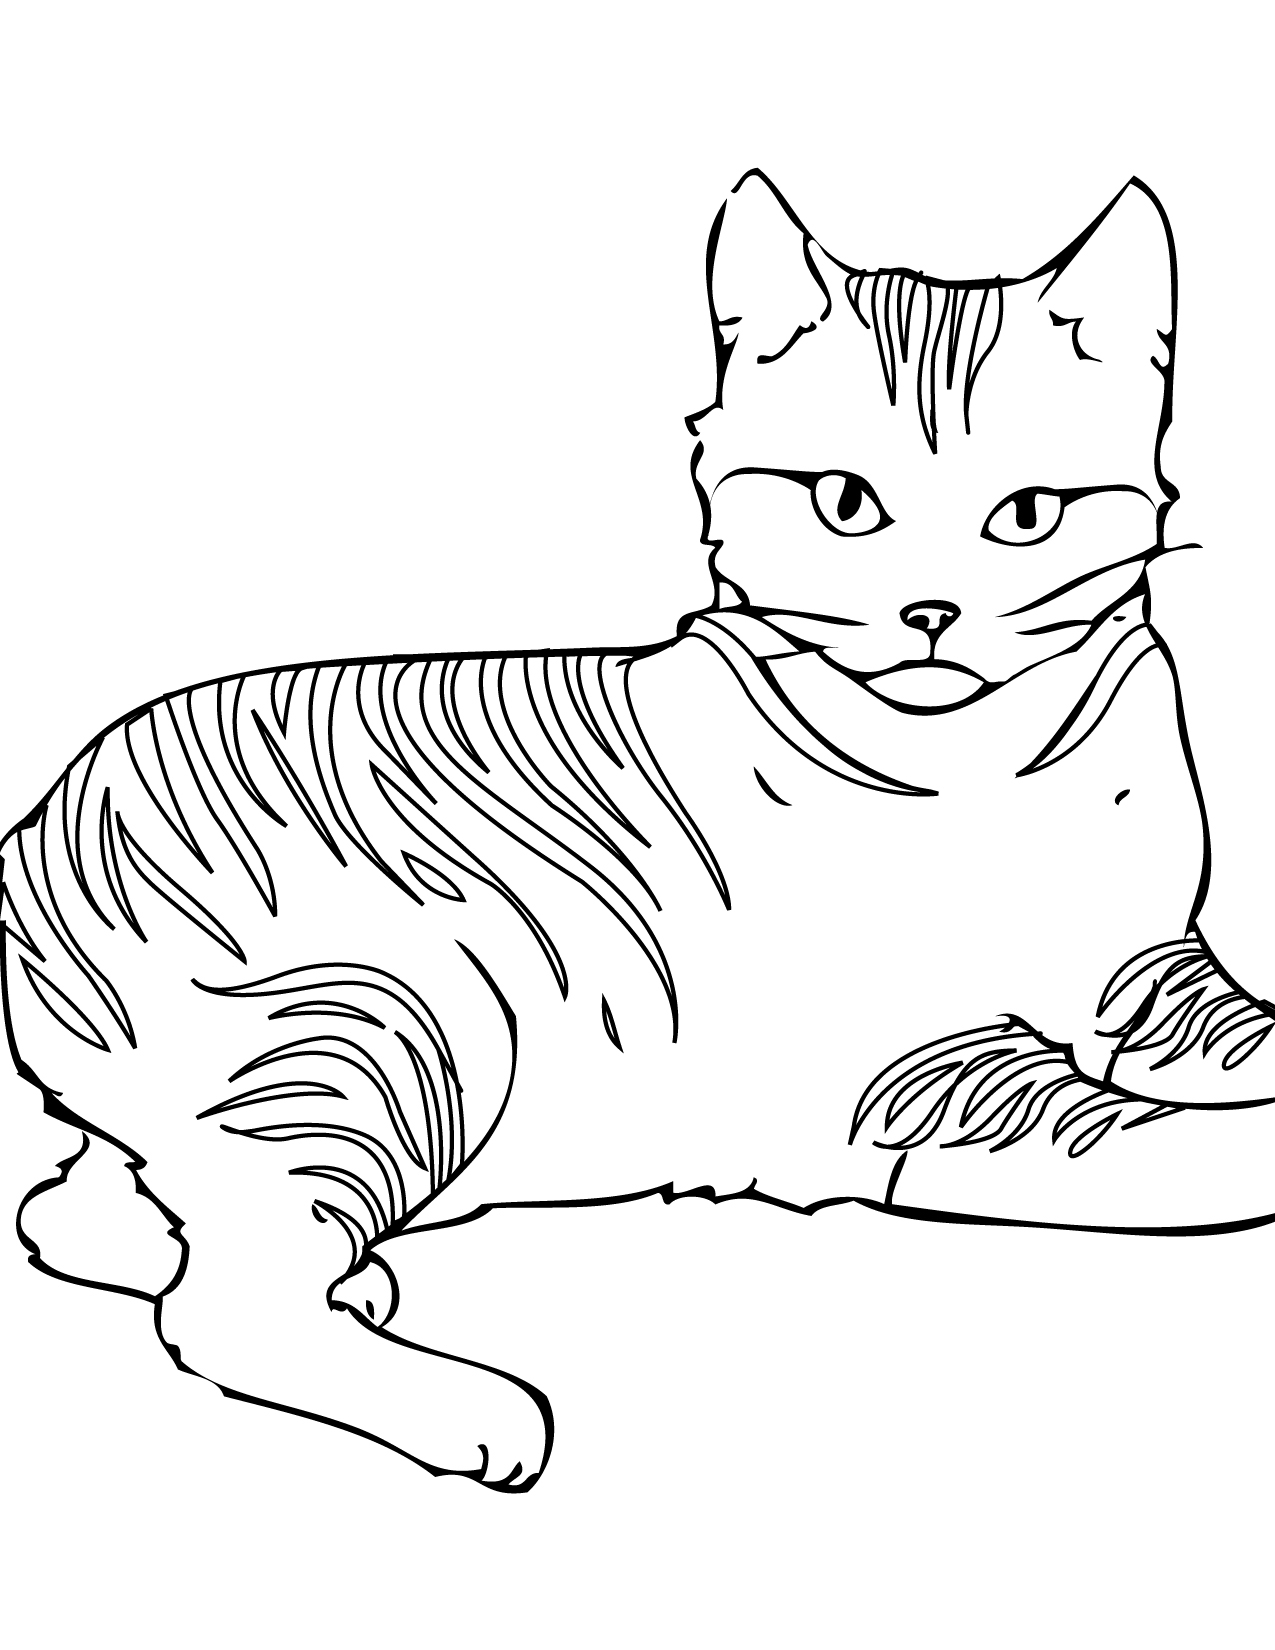 Cat Coloring Pages Download 9e - Free For Children